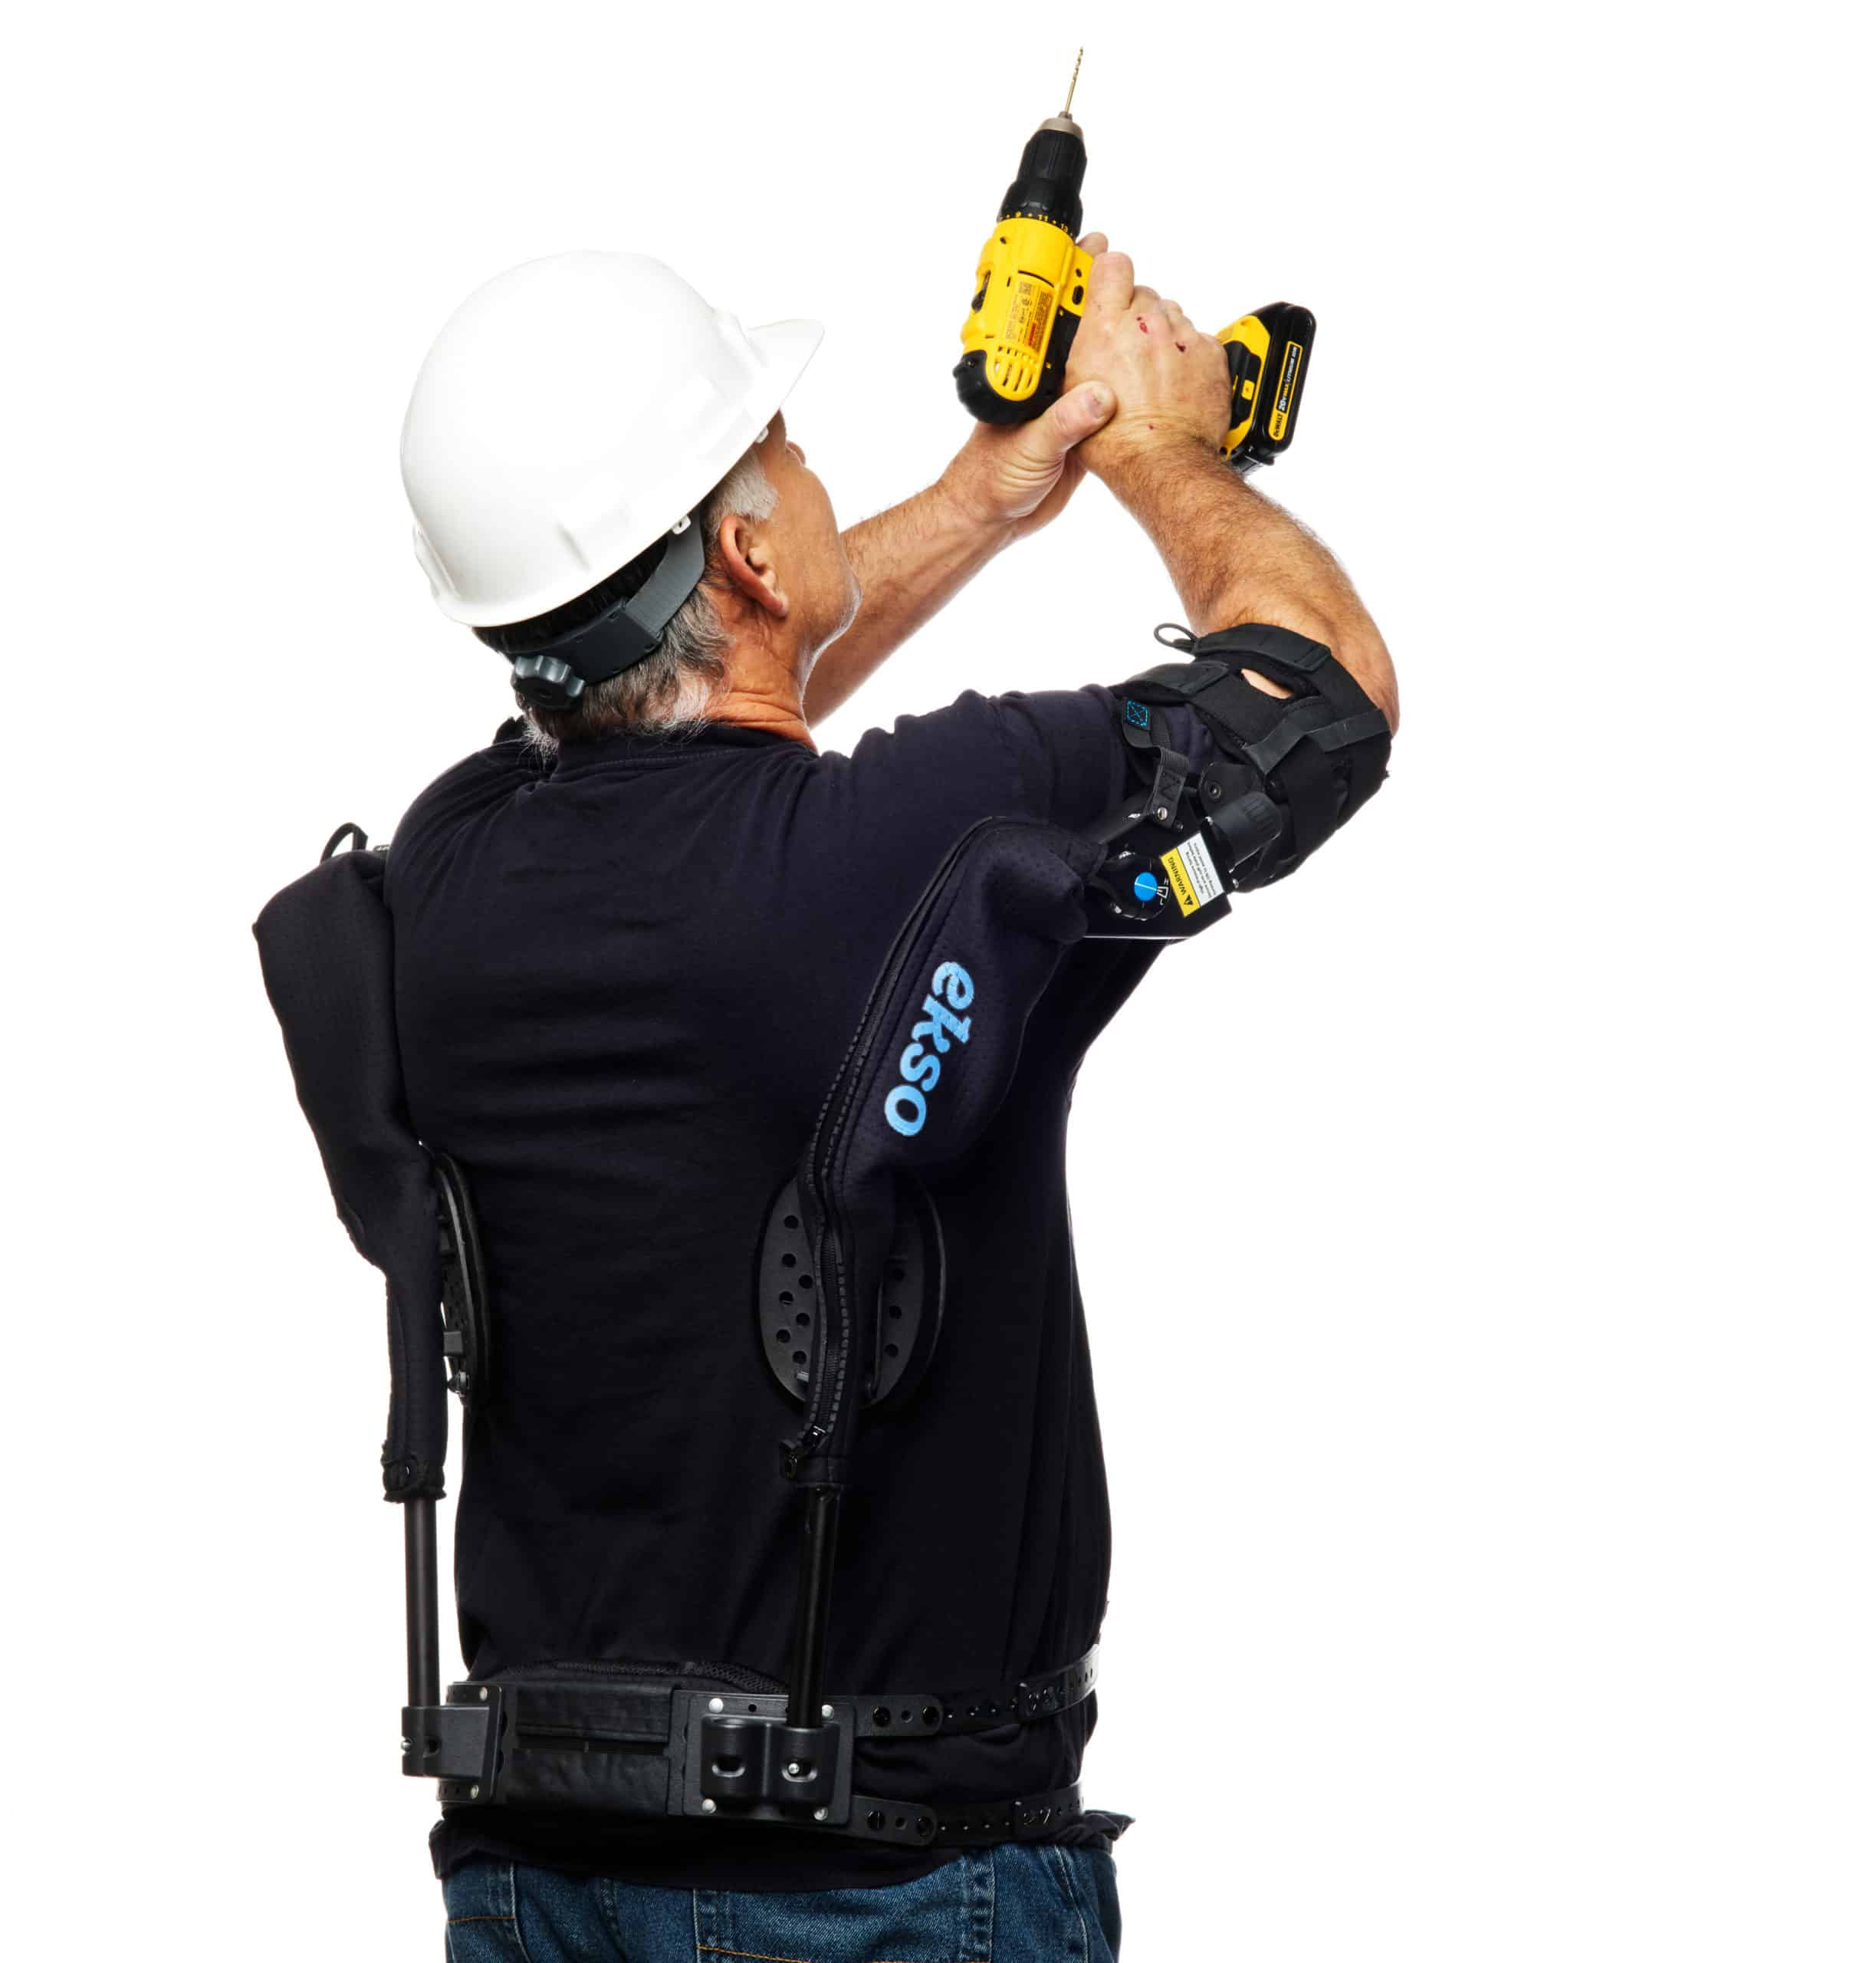 Man using Ekso EVO with an automatic screwdriver.